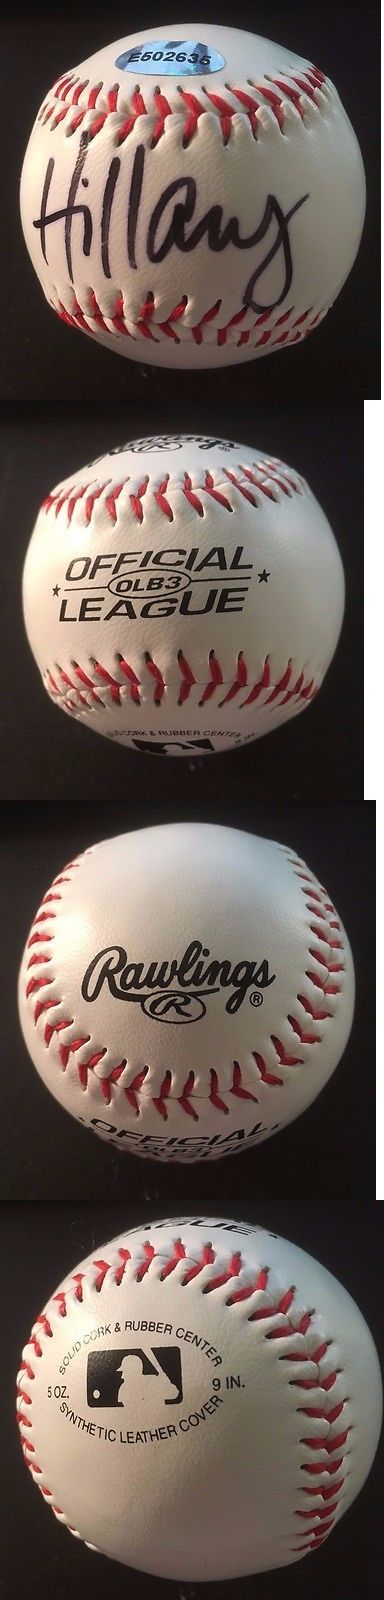 Hillary Clinton: Hillary Rodham Clinton - Hand Signed Official League Baseball - Coa And Holo -> BUY IT NOW ONLY: $49.99 on eBay!